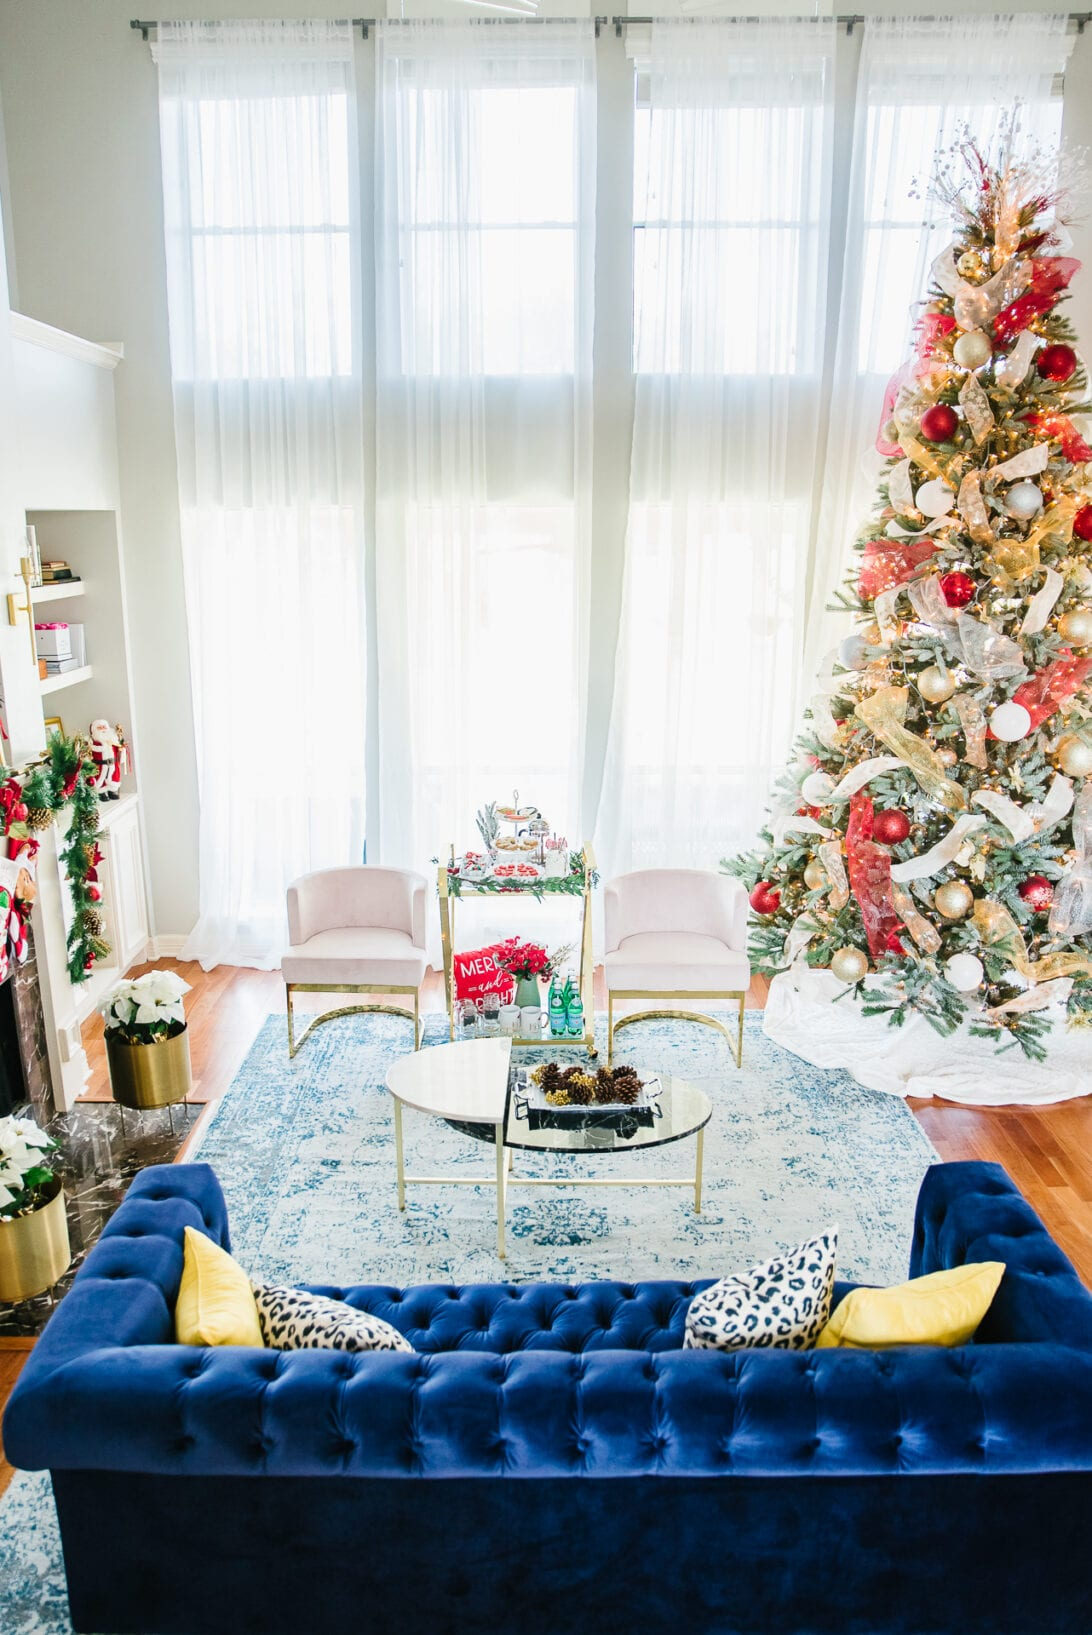 christmas living room decor, blue couch, glam style living room